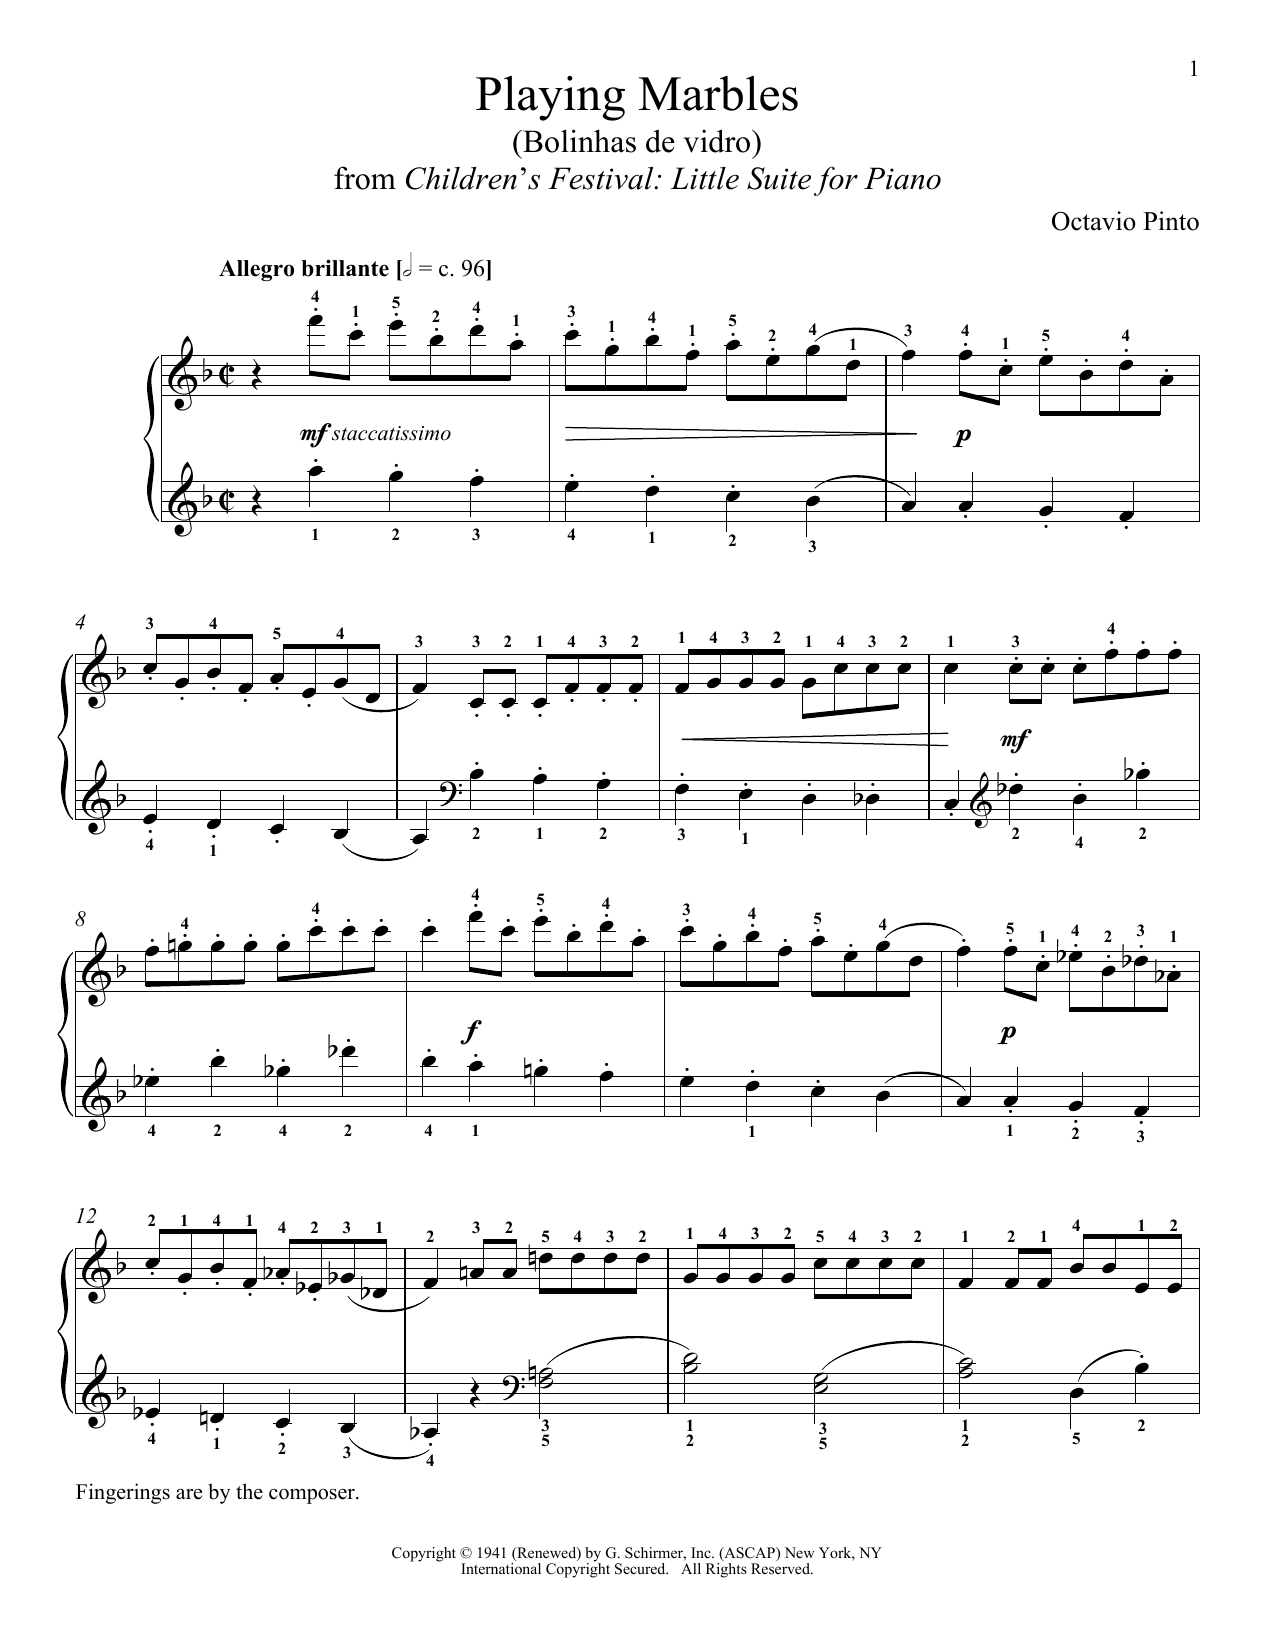 Download Octavio Pinto 'Playing Marbles' Digital Sheet Music Notes & Chords and start playing in minutes